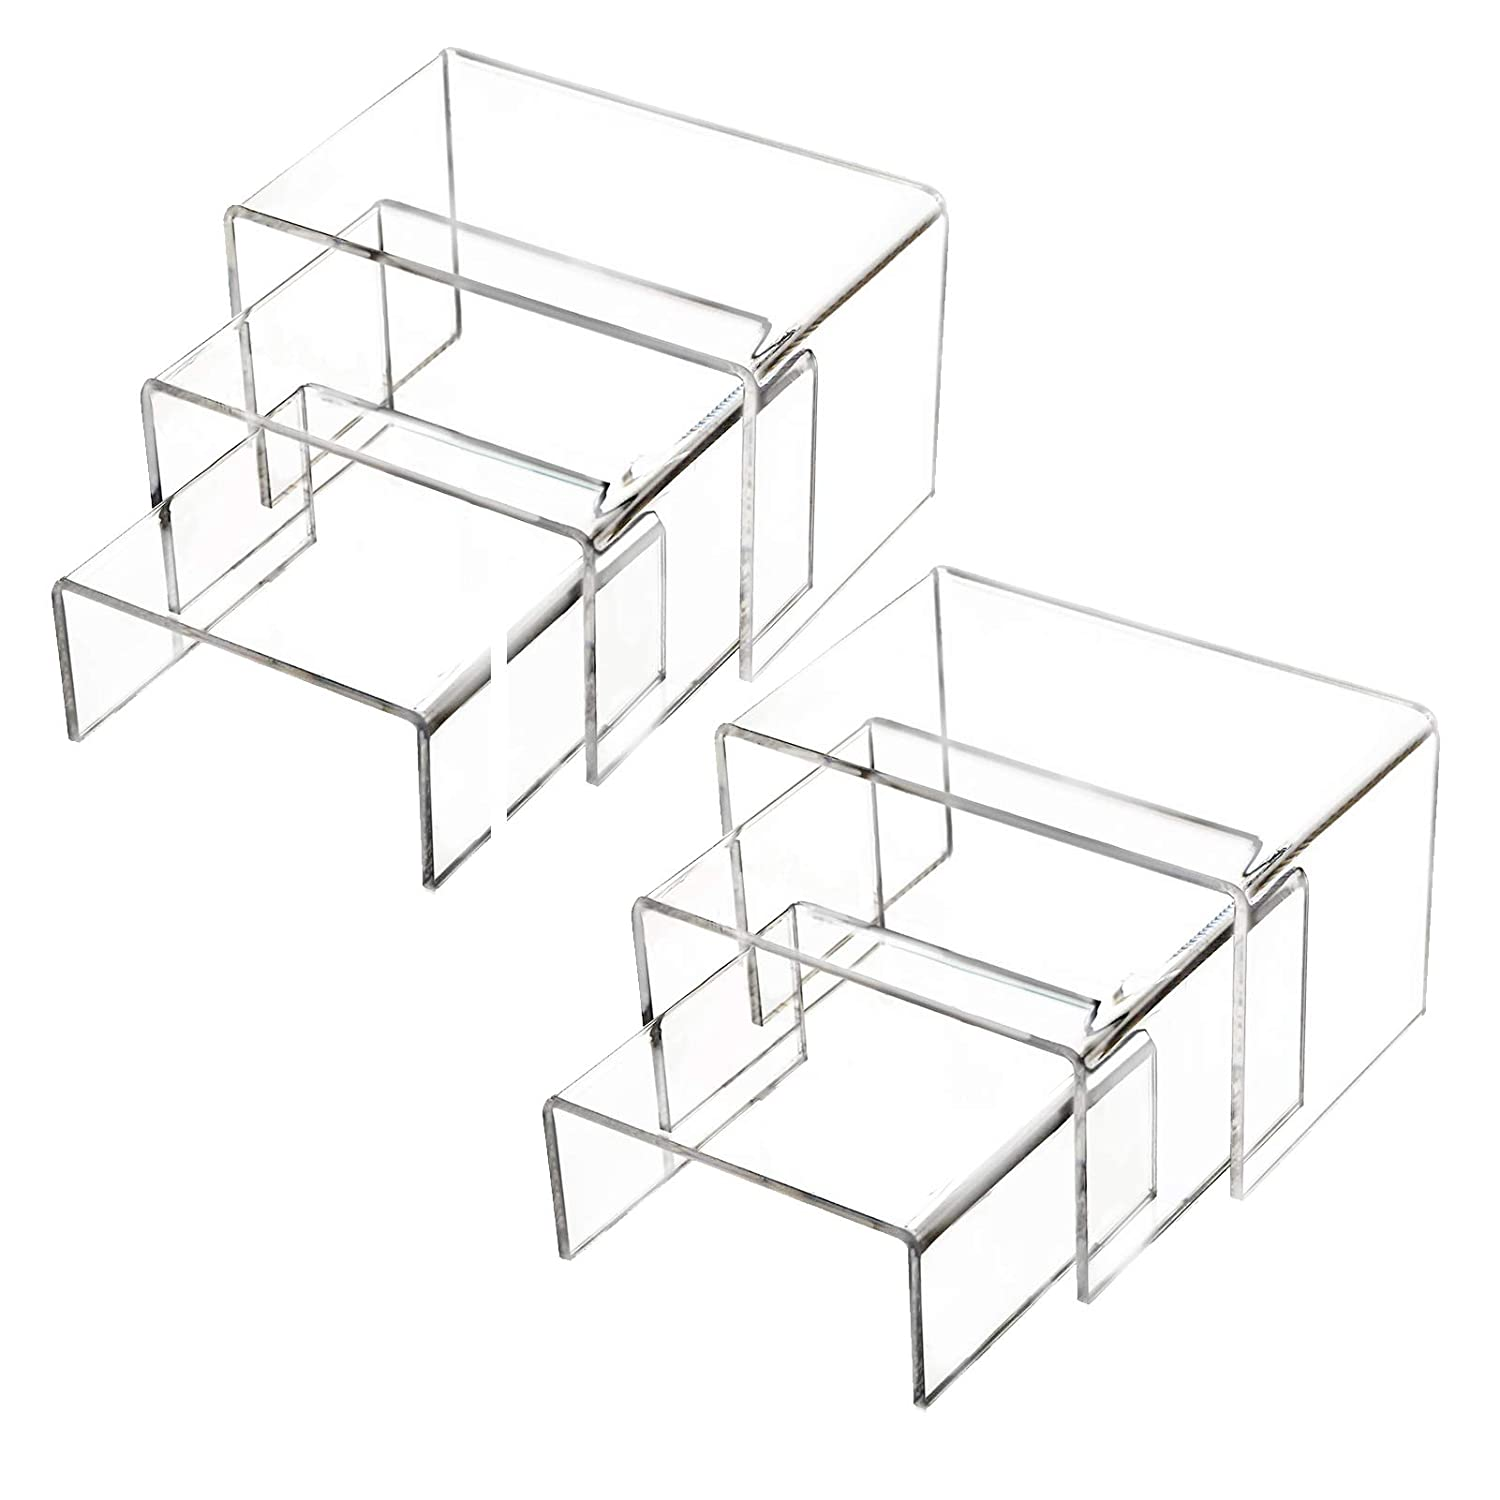 2 Sets Clear Acrylic Display Risers, Display Riser Stands Showcase for Jewelry, Cupcake and Figures, with Sticky Protective Film - 3 Sizes